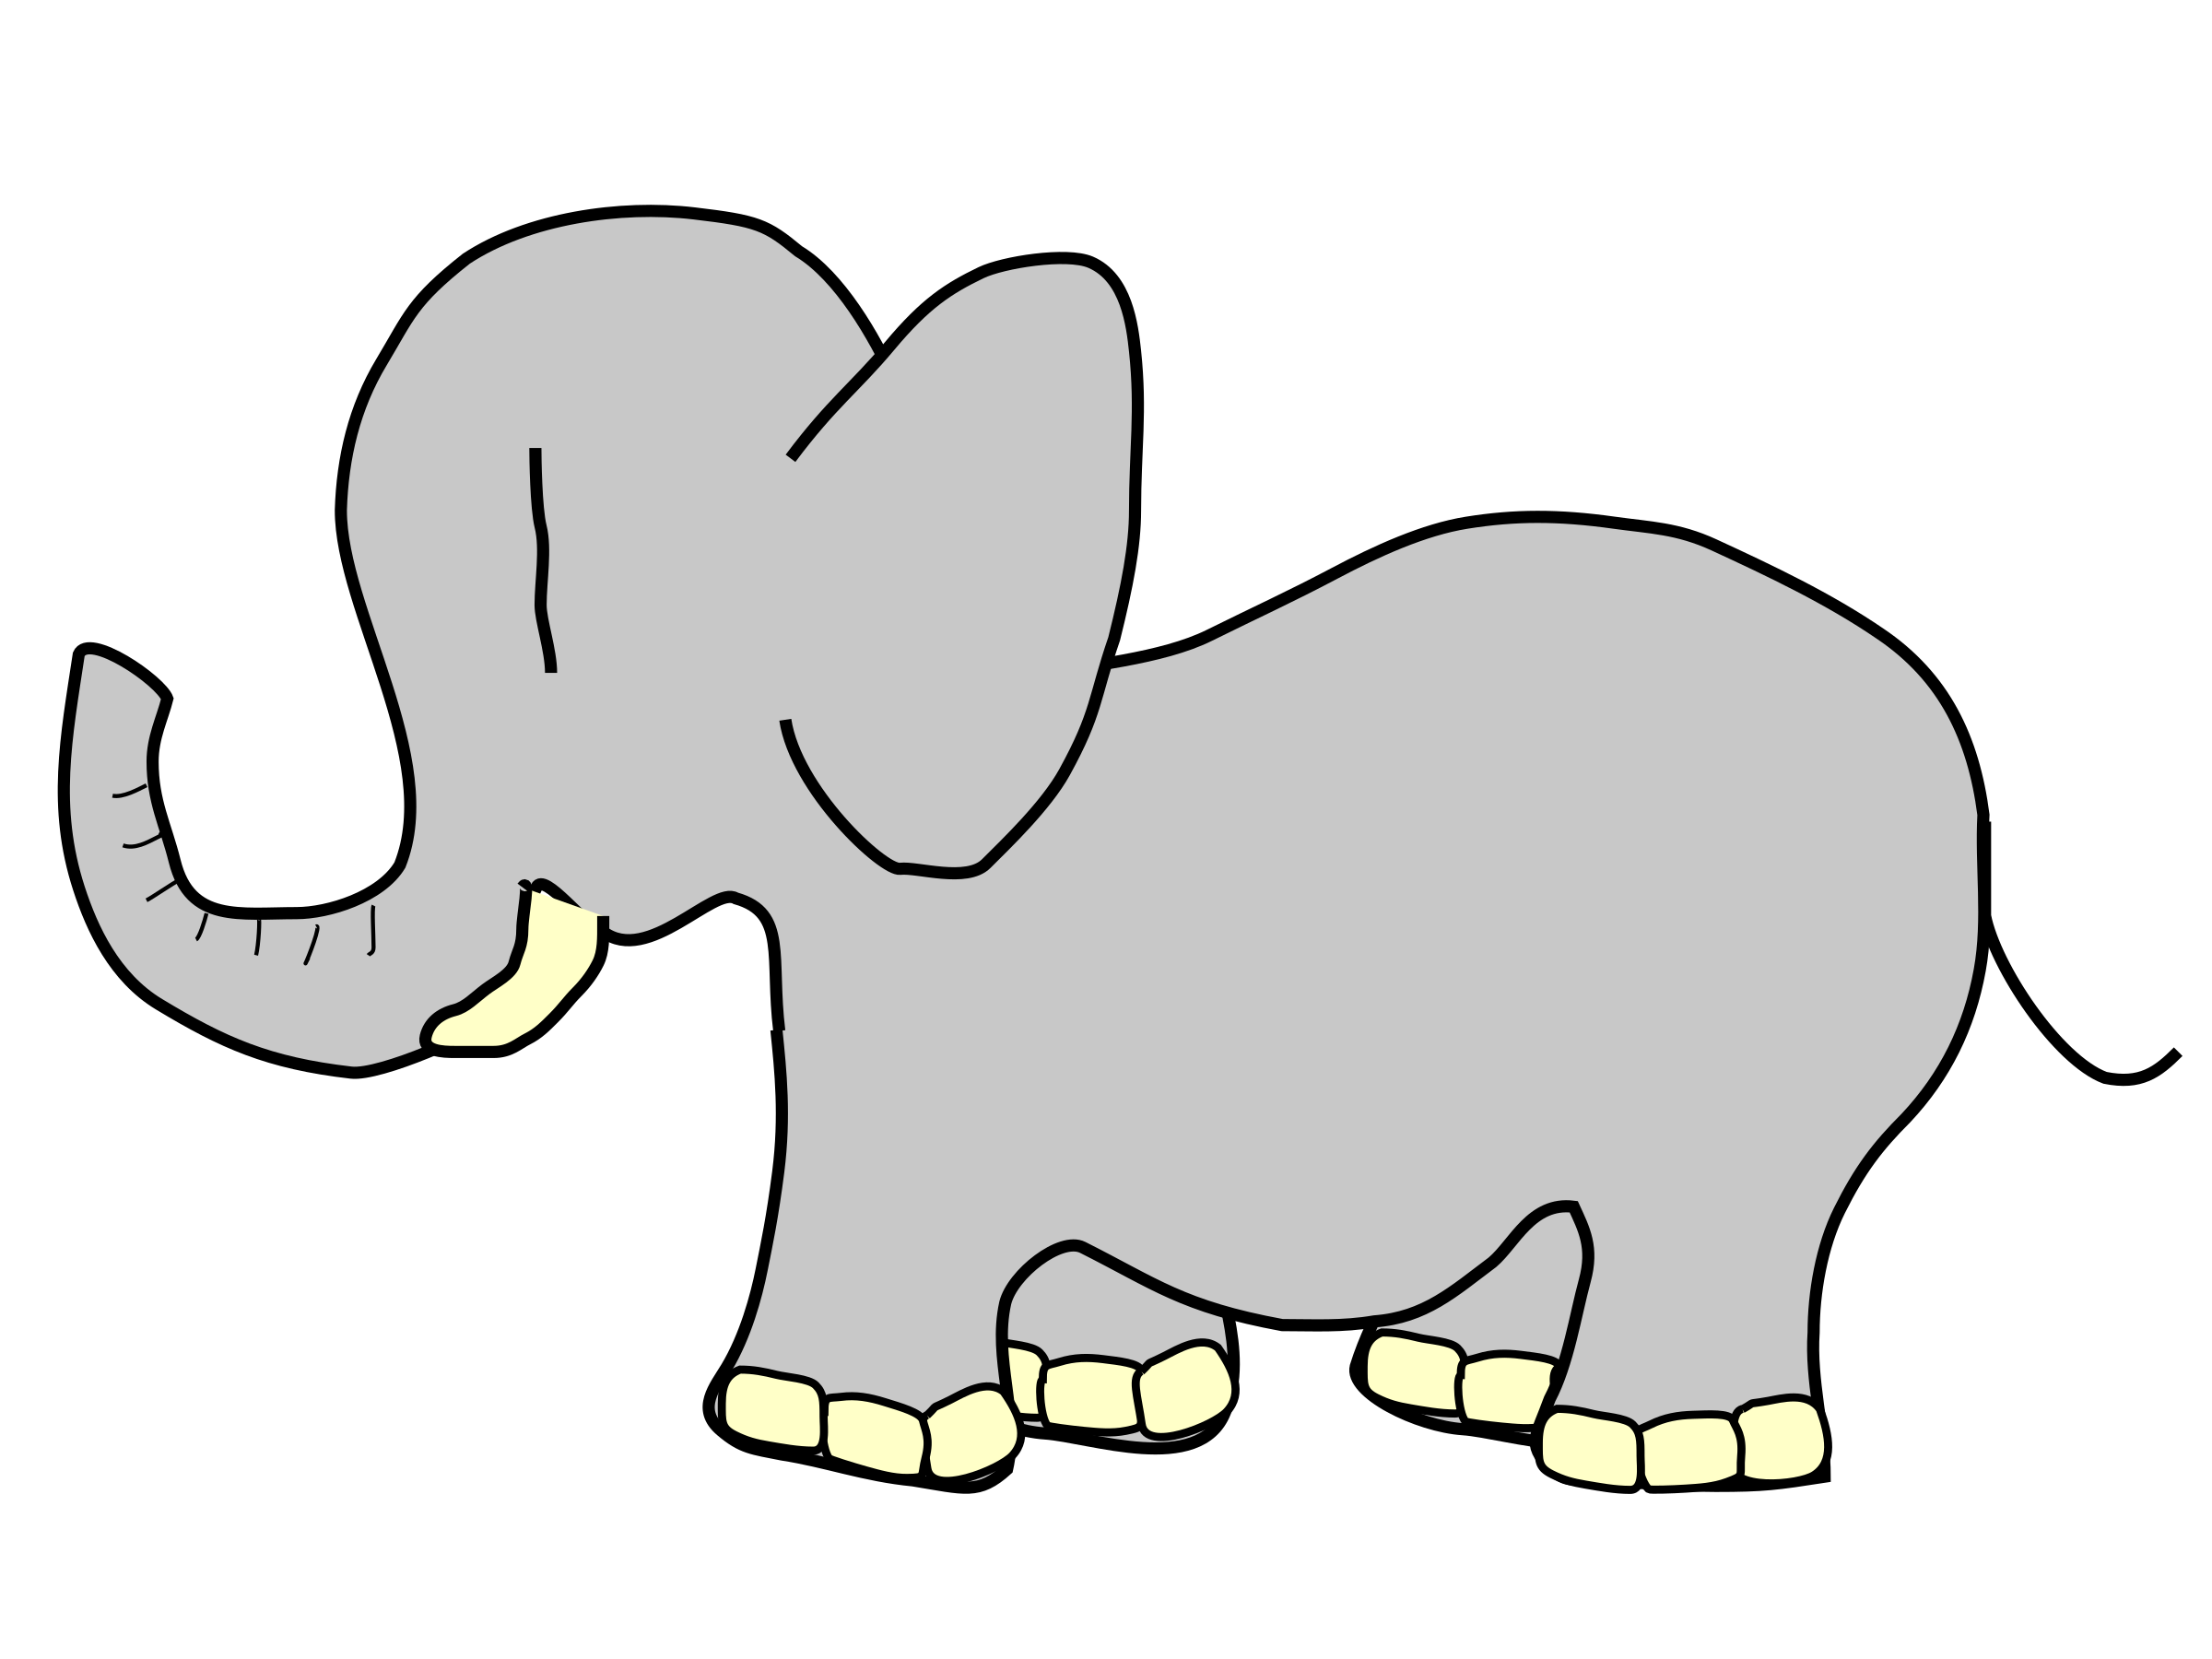 Elephant by TatsuoUeda